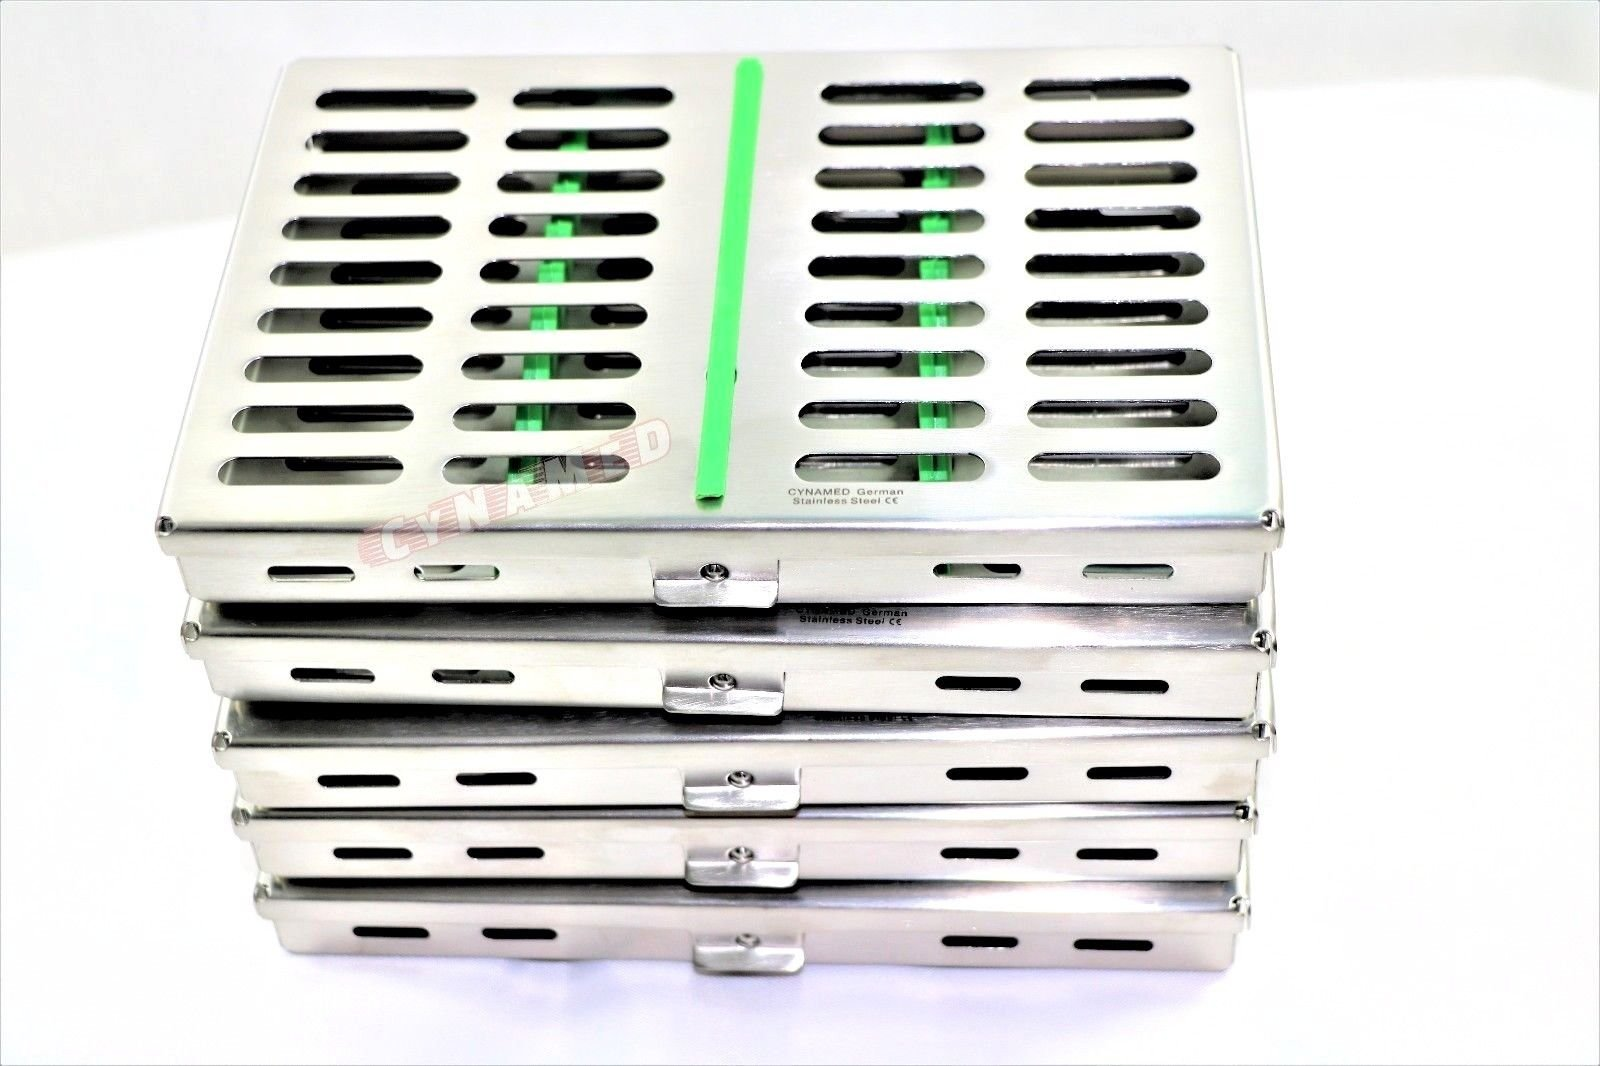 5 German Dental Surgical Autoclave Sterilization Cassettes Box for 10 Instruments 7.25''LX 5''W X0.75 Green CYNAMED